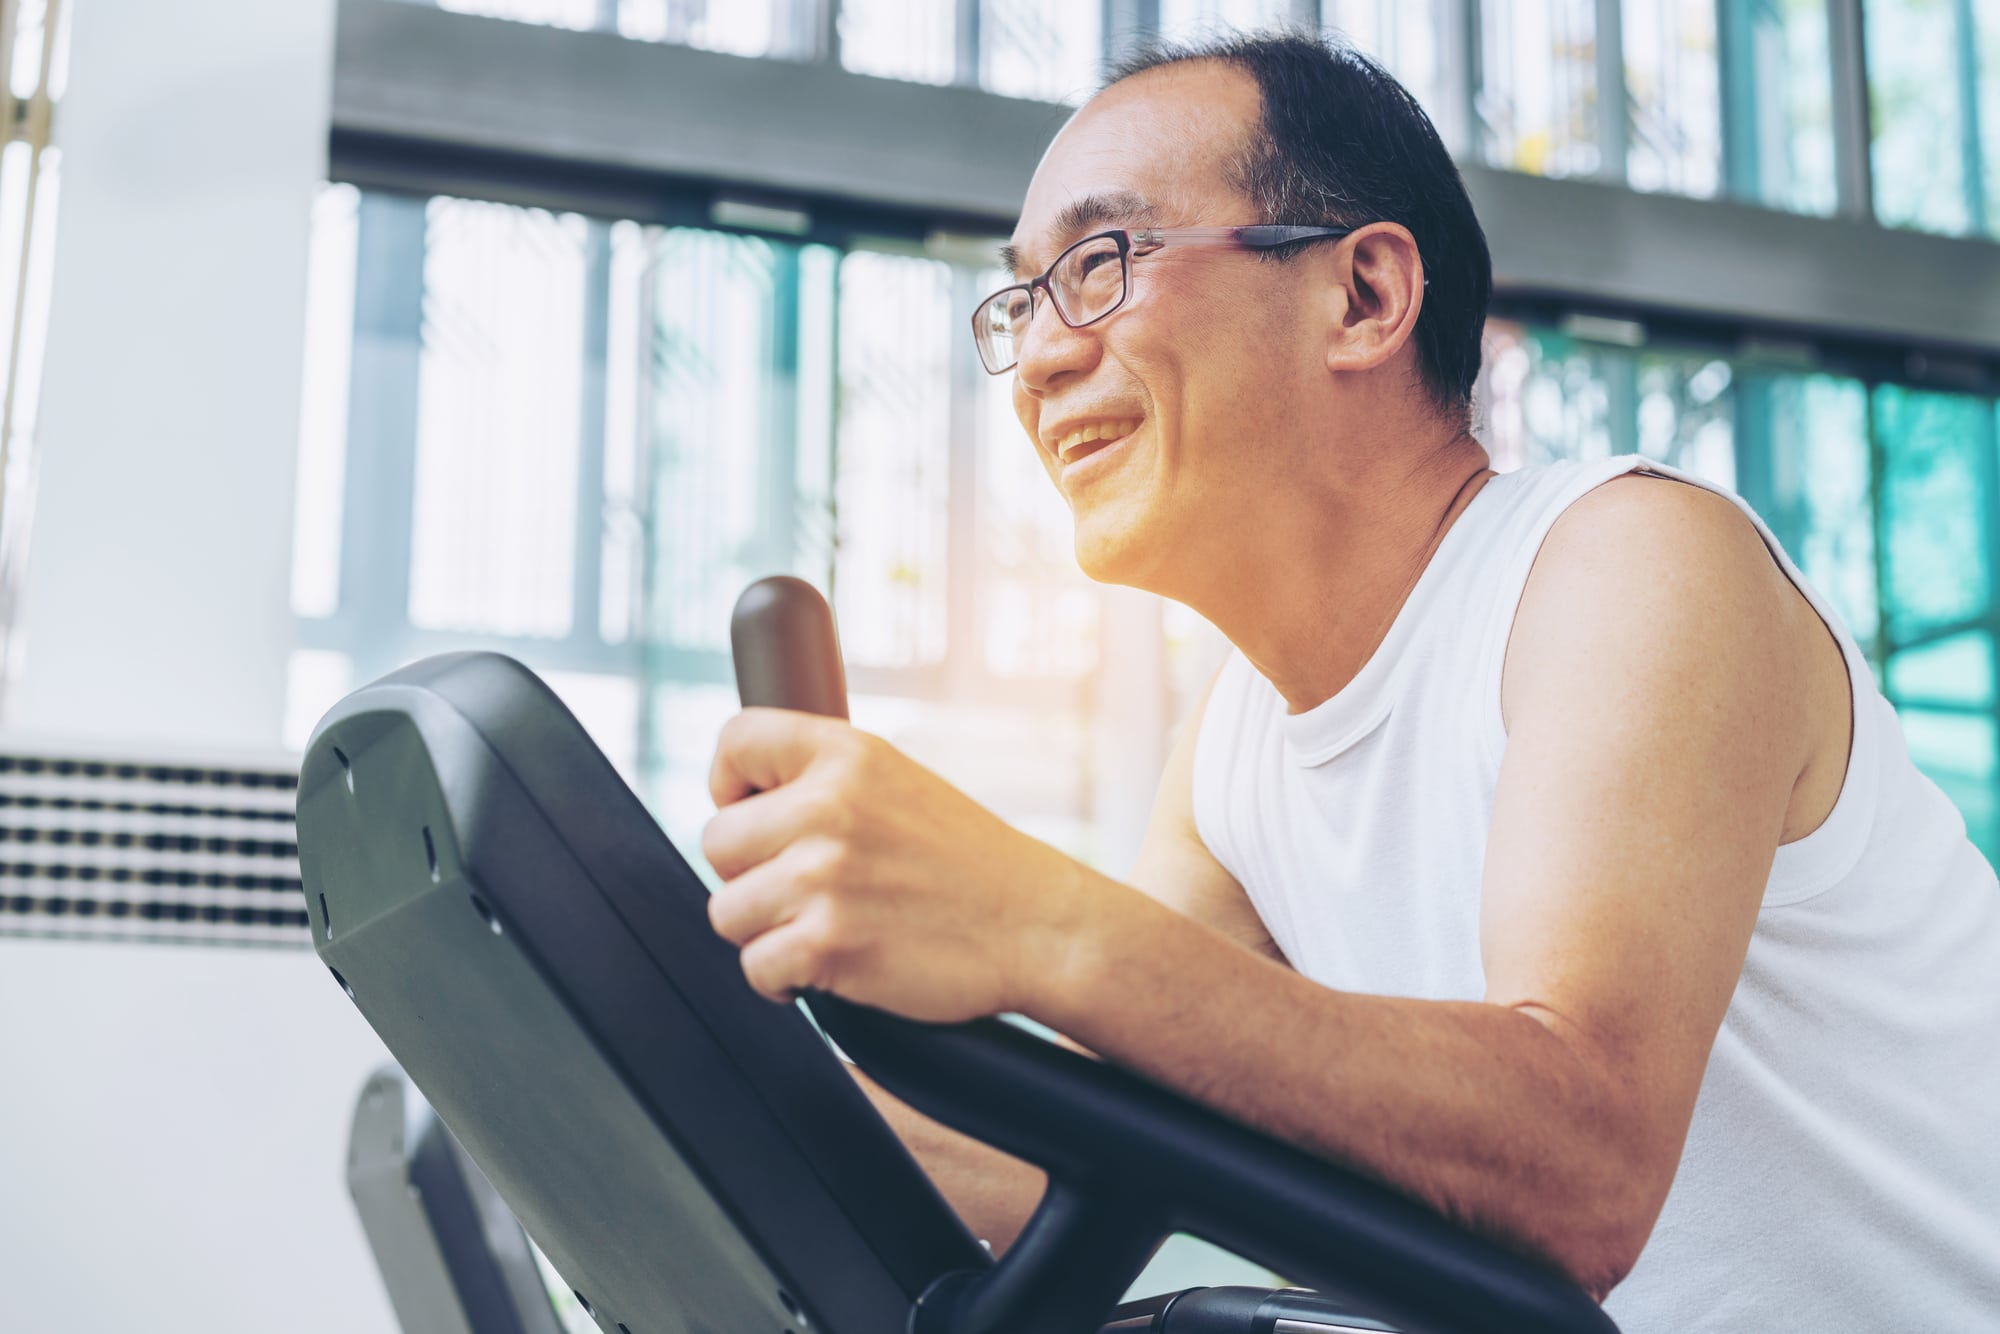 Senior man exercise on treadmill in fitness center. Mature healthy lifestyle.